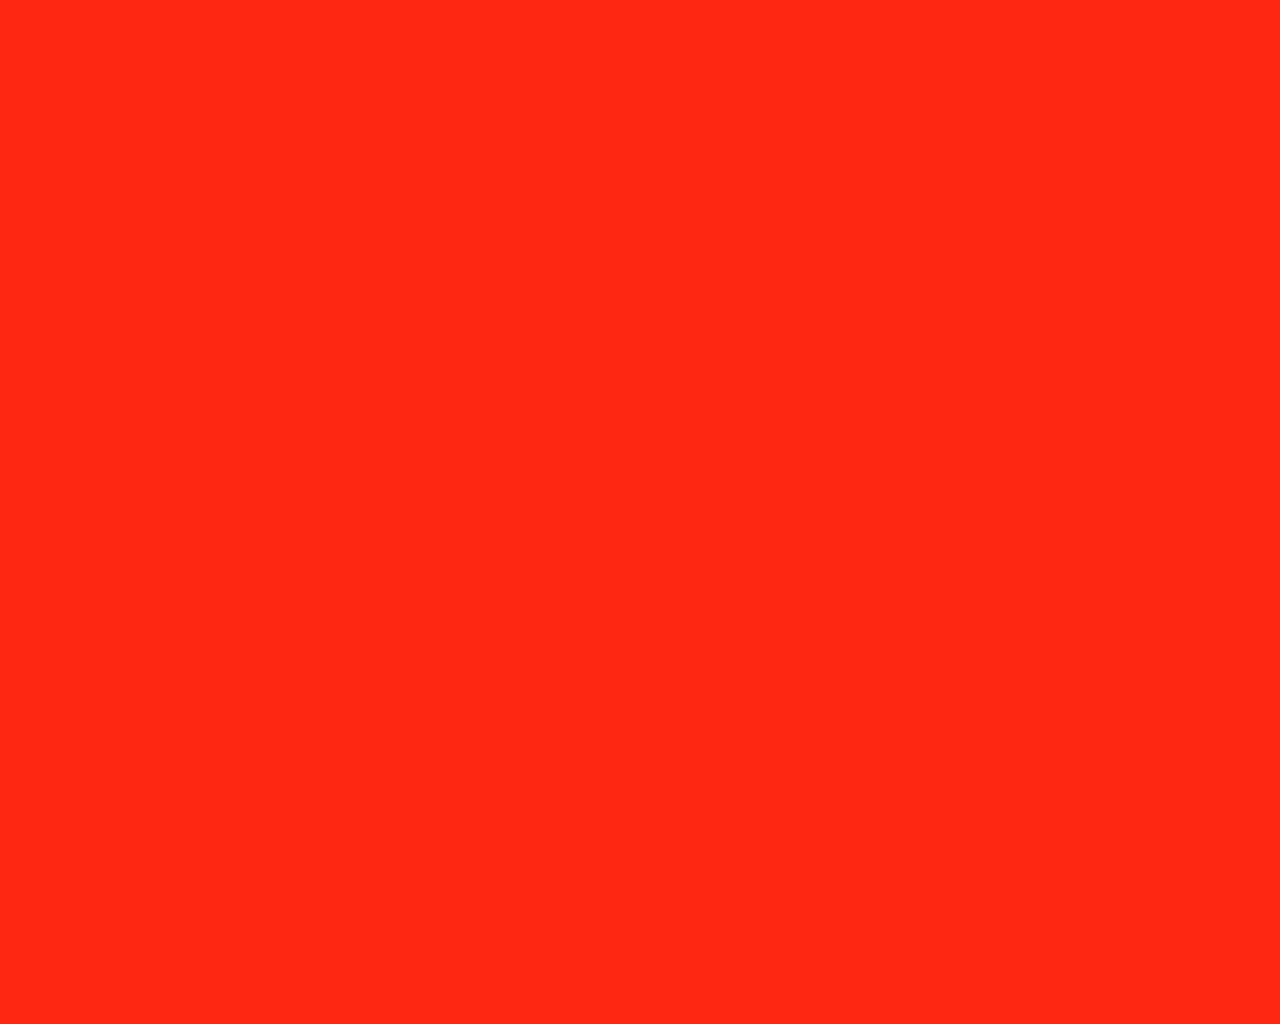 1280x1024 Red RYB Solid Color Background